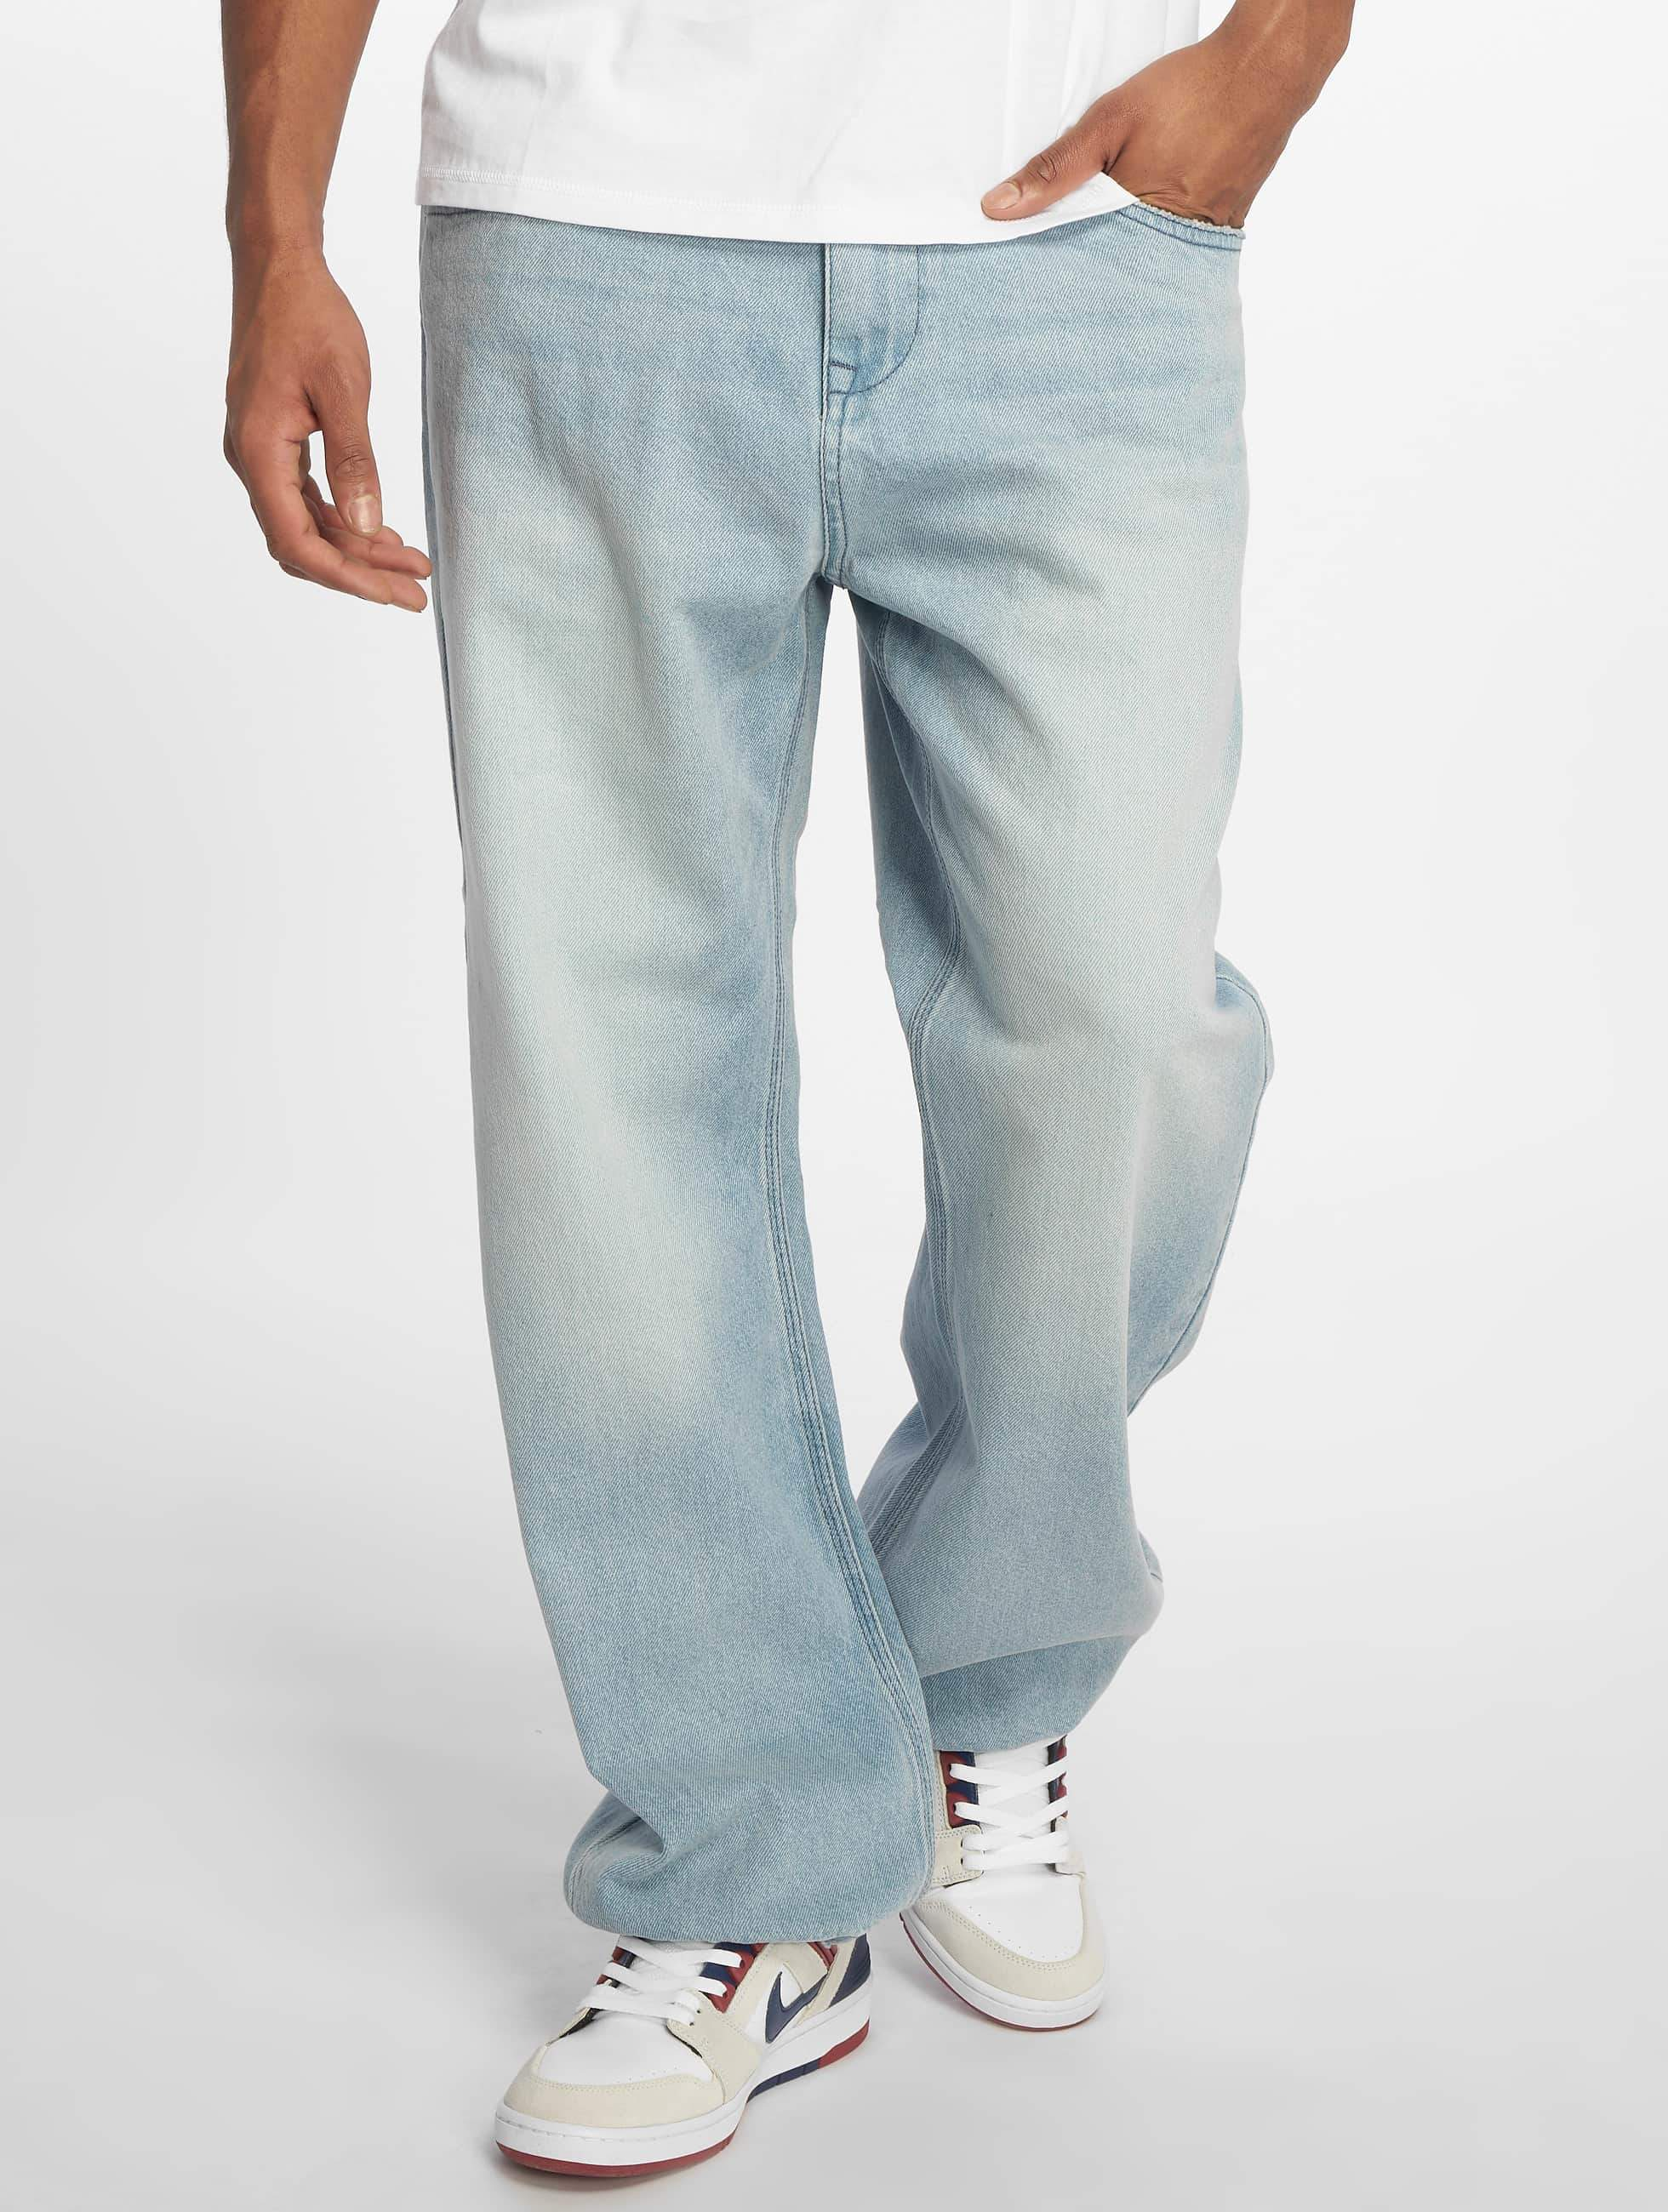 Ecko Unltd. / Baggy Big Jack Baggy Fit in blue W 52 L 34